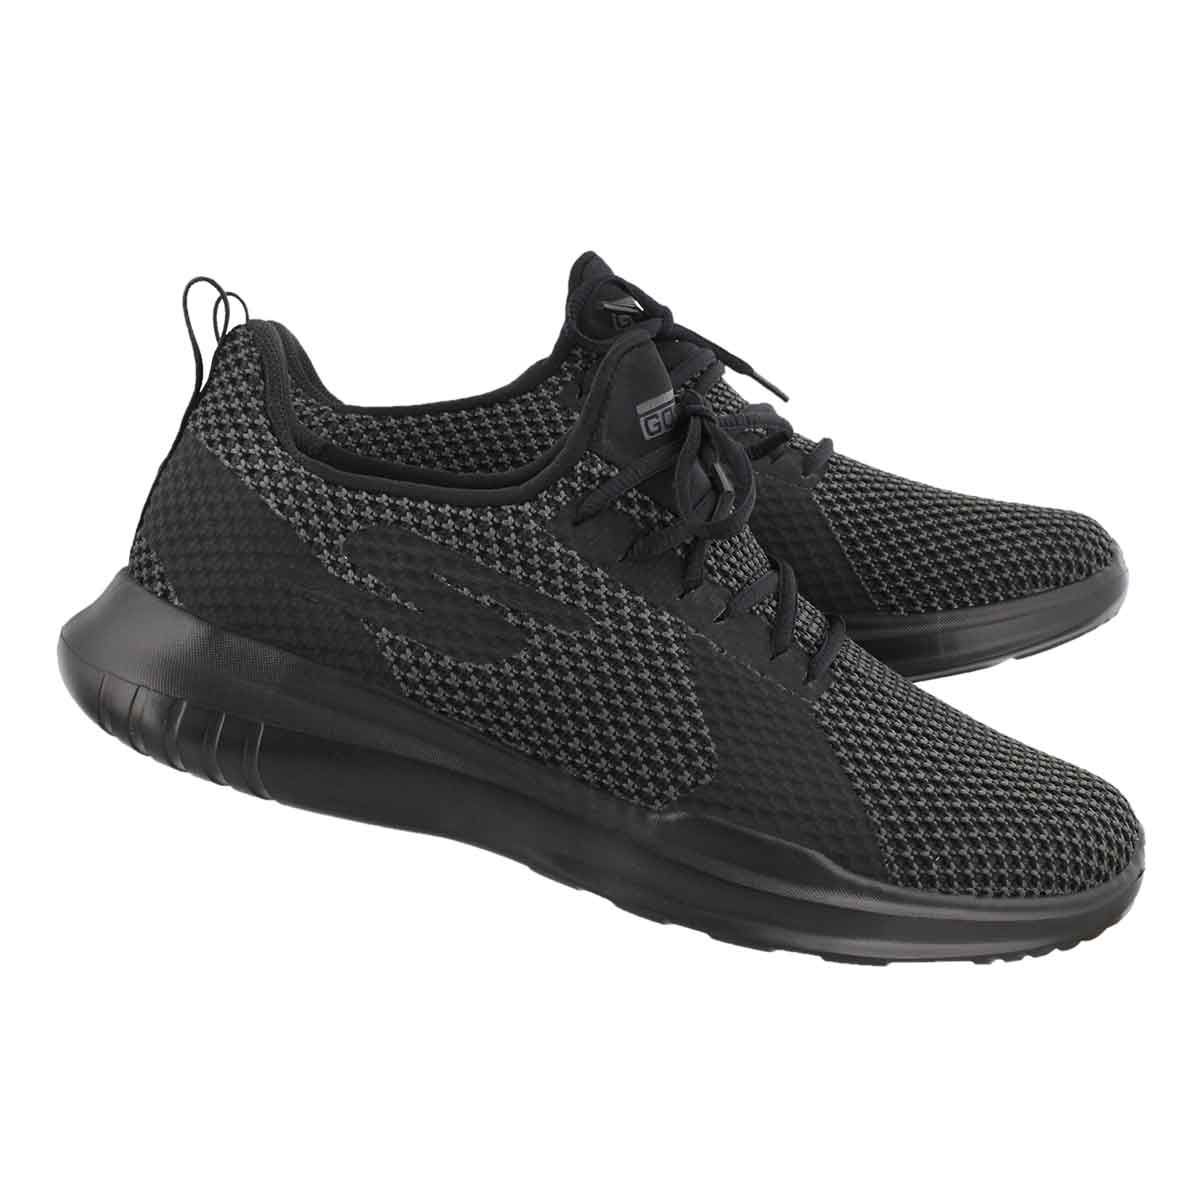 Mns Go Run Mojo Pep blk lace up runner